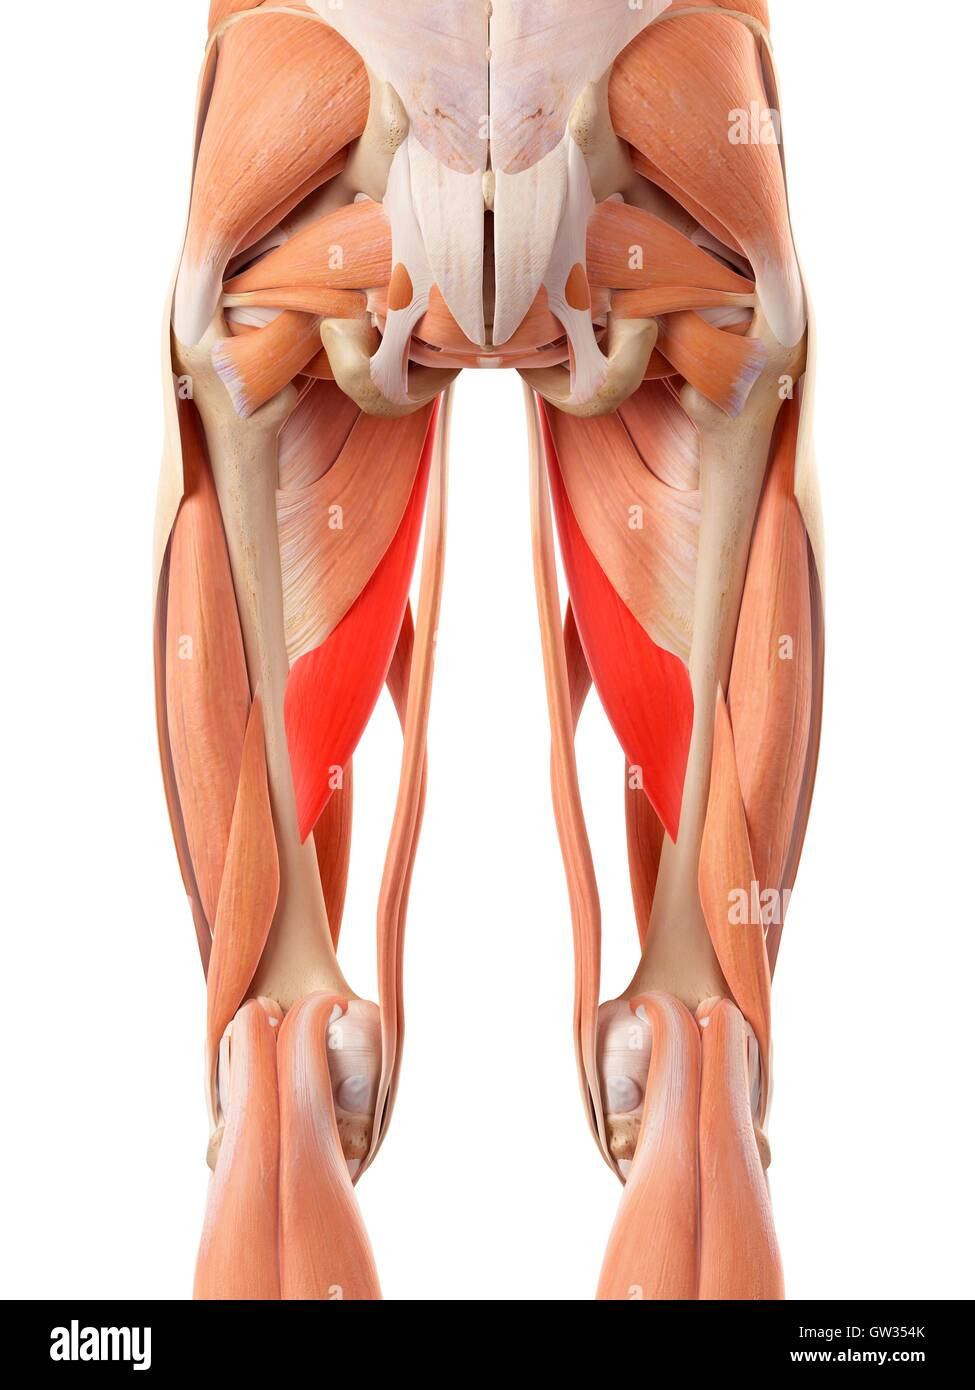 human muscular system of the legs, illustration stock photo, Muscles